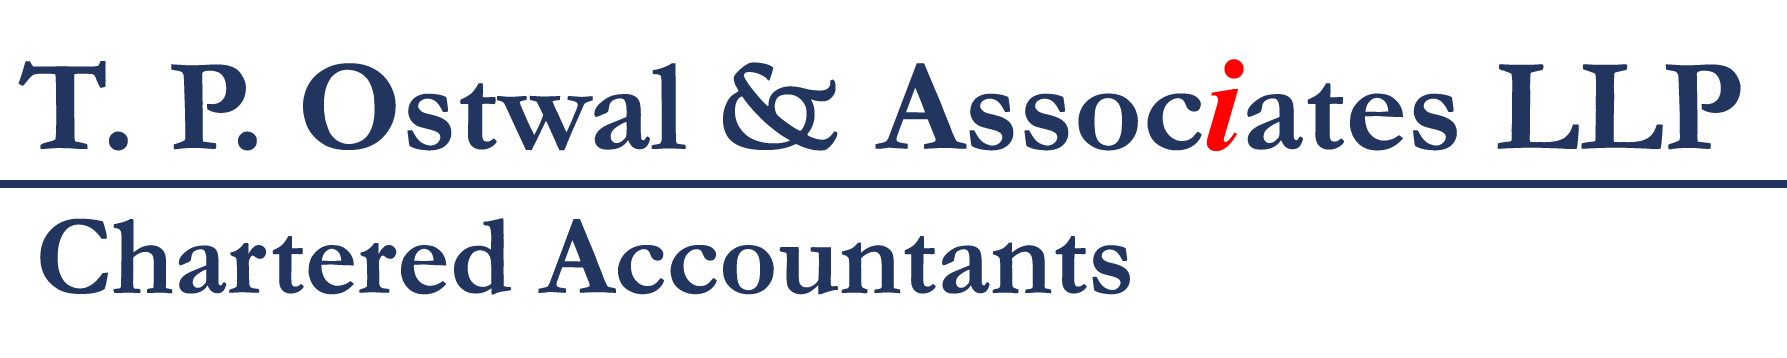 T.P. Ostwal & Associates LLP Chartered Accountants